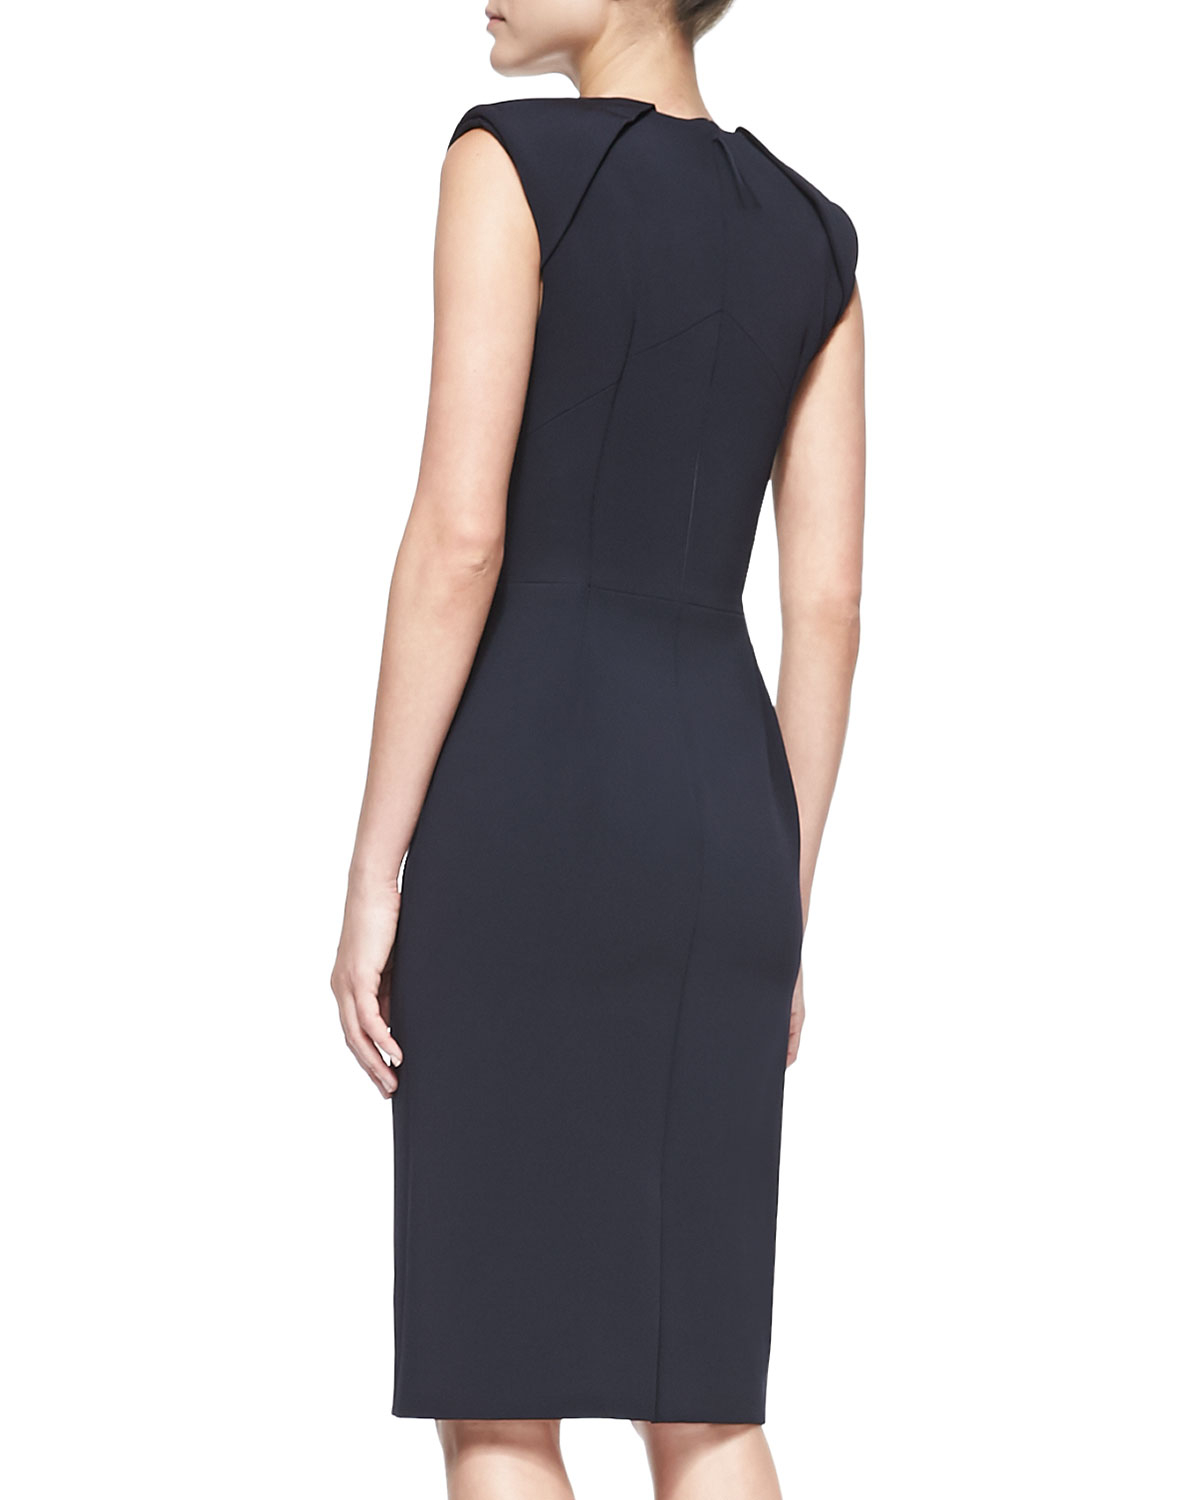 Mendel Sleeveless Caftanneck Sheath Dress in Blue (MIDNIGHT) | Lyst